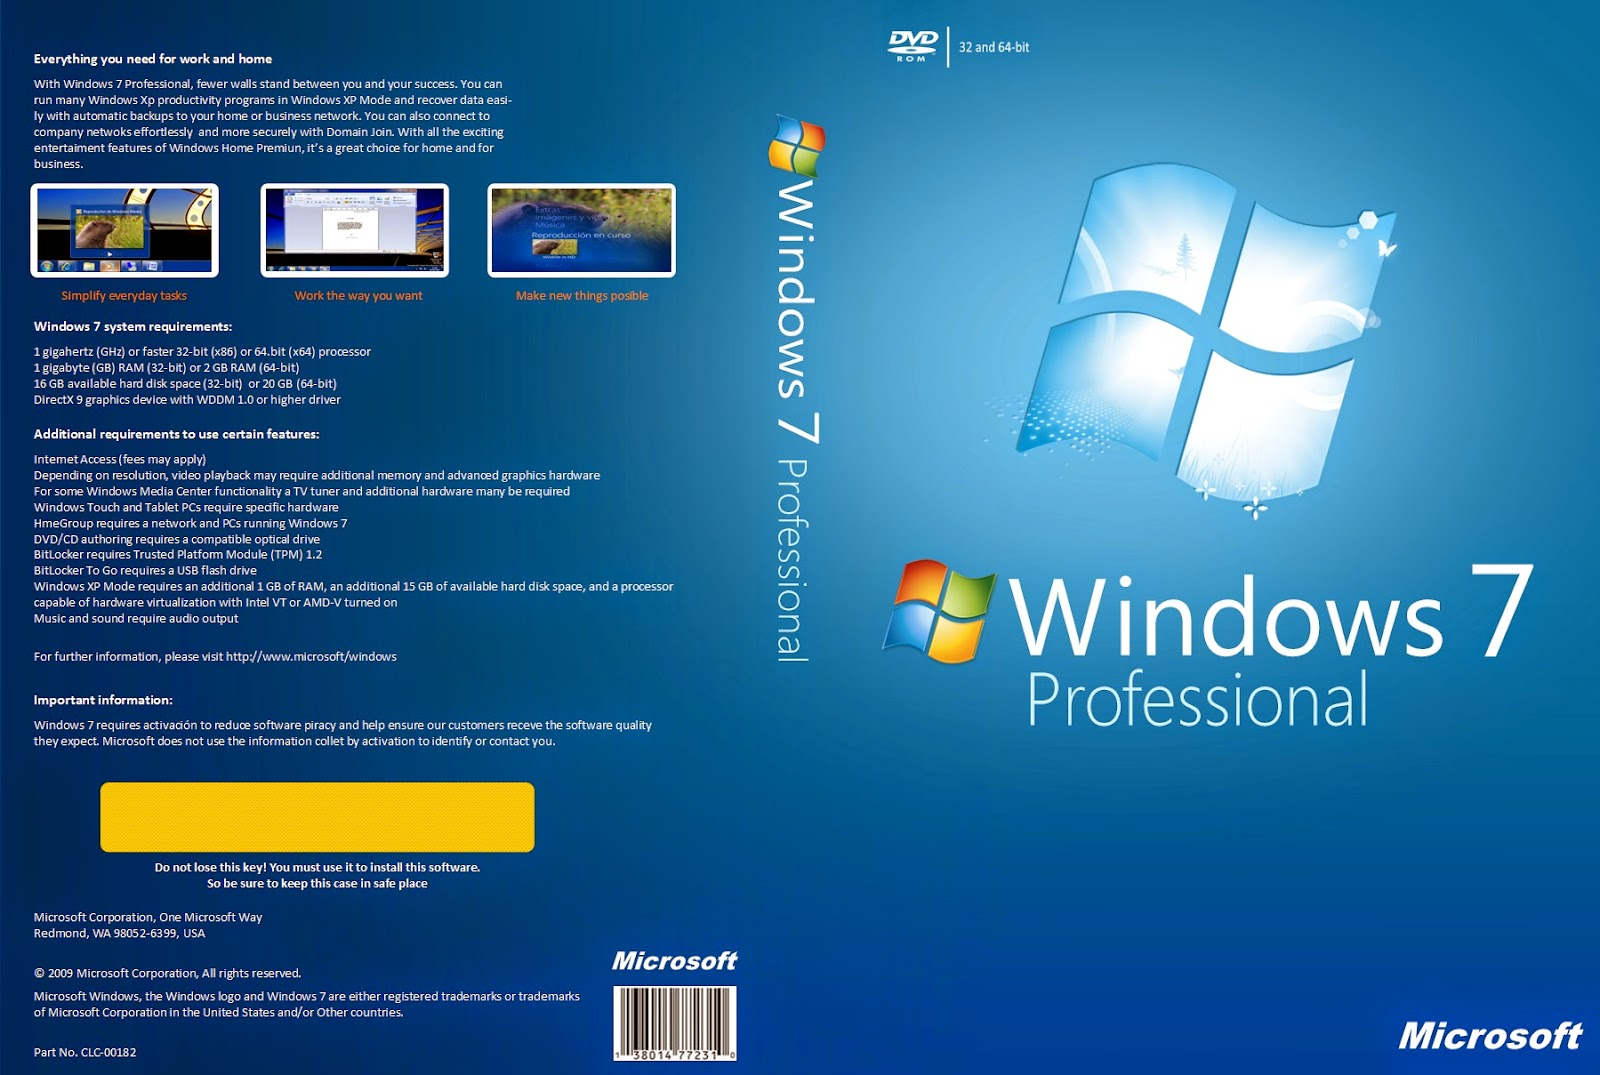 windows 7 professional 32 bit iso file